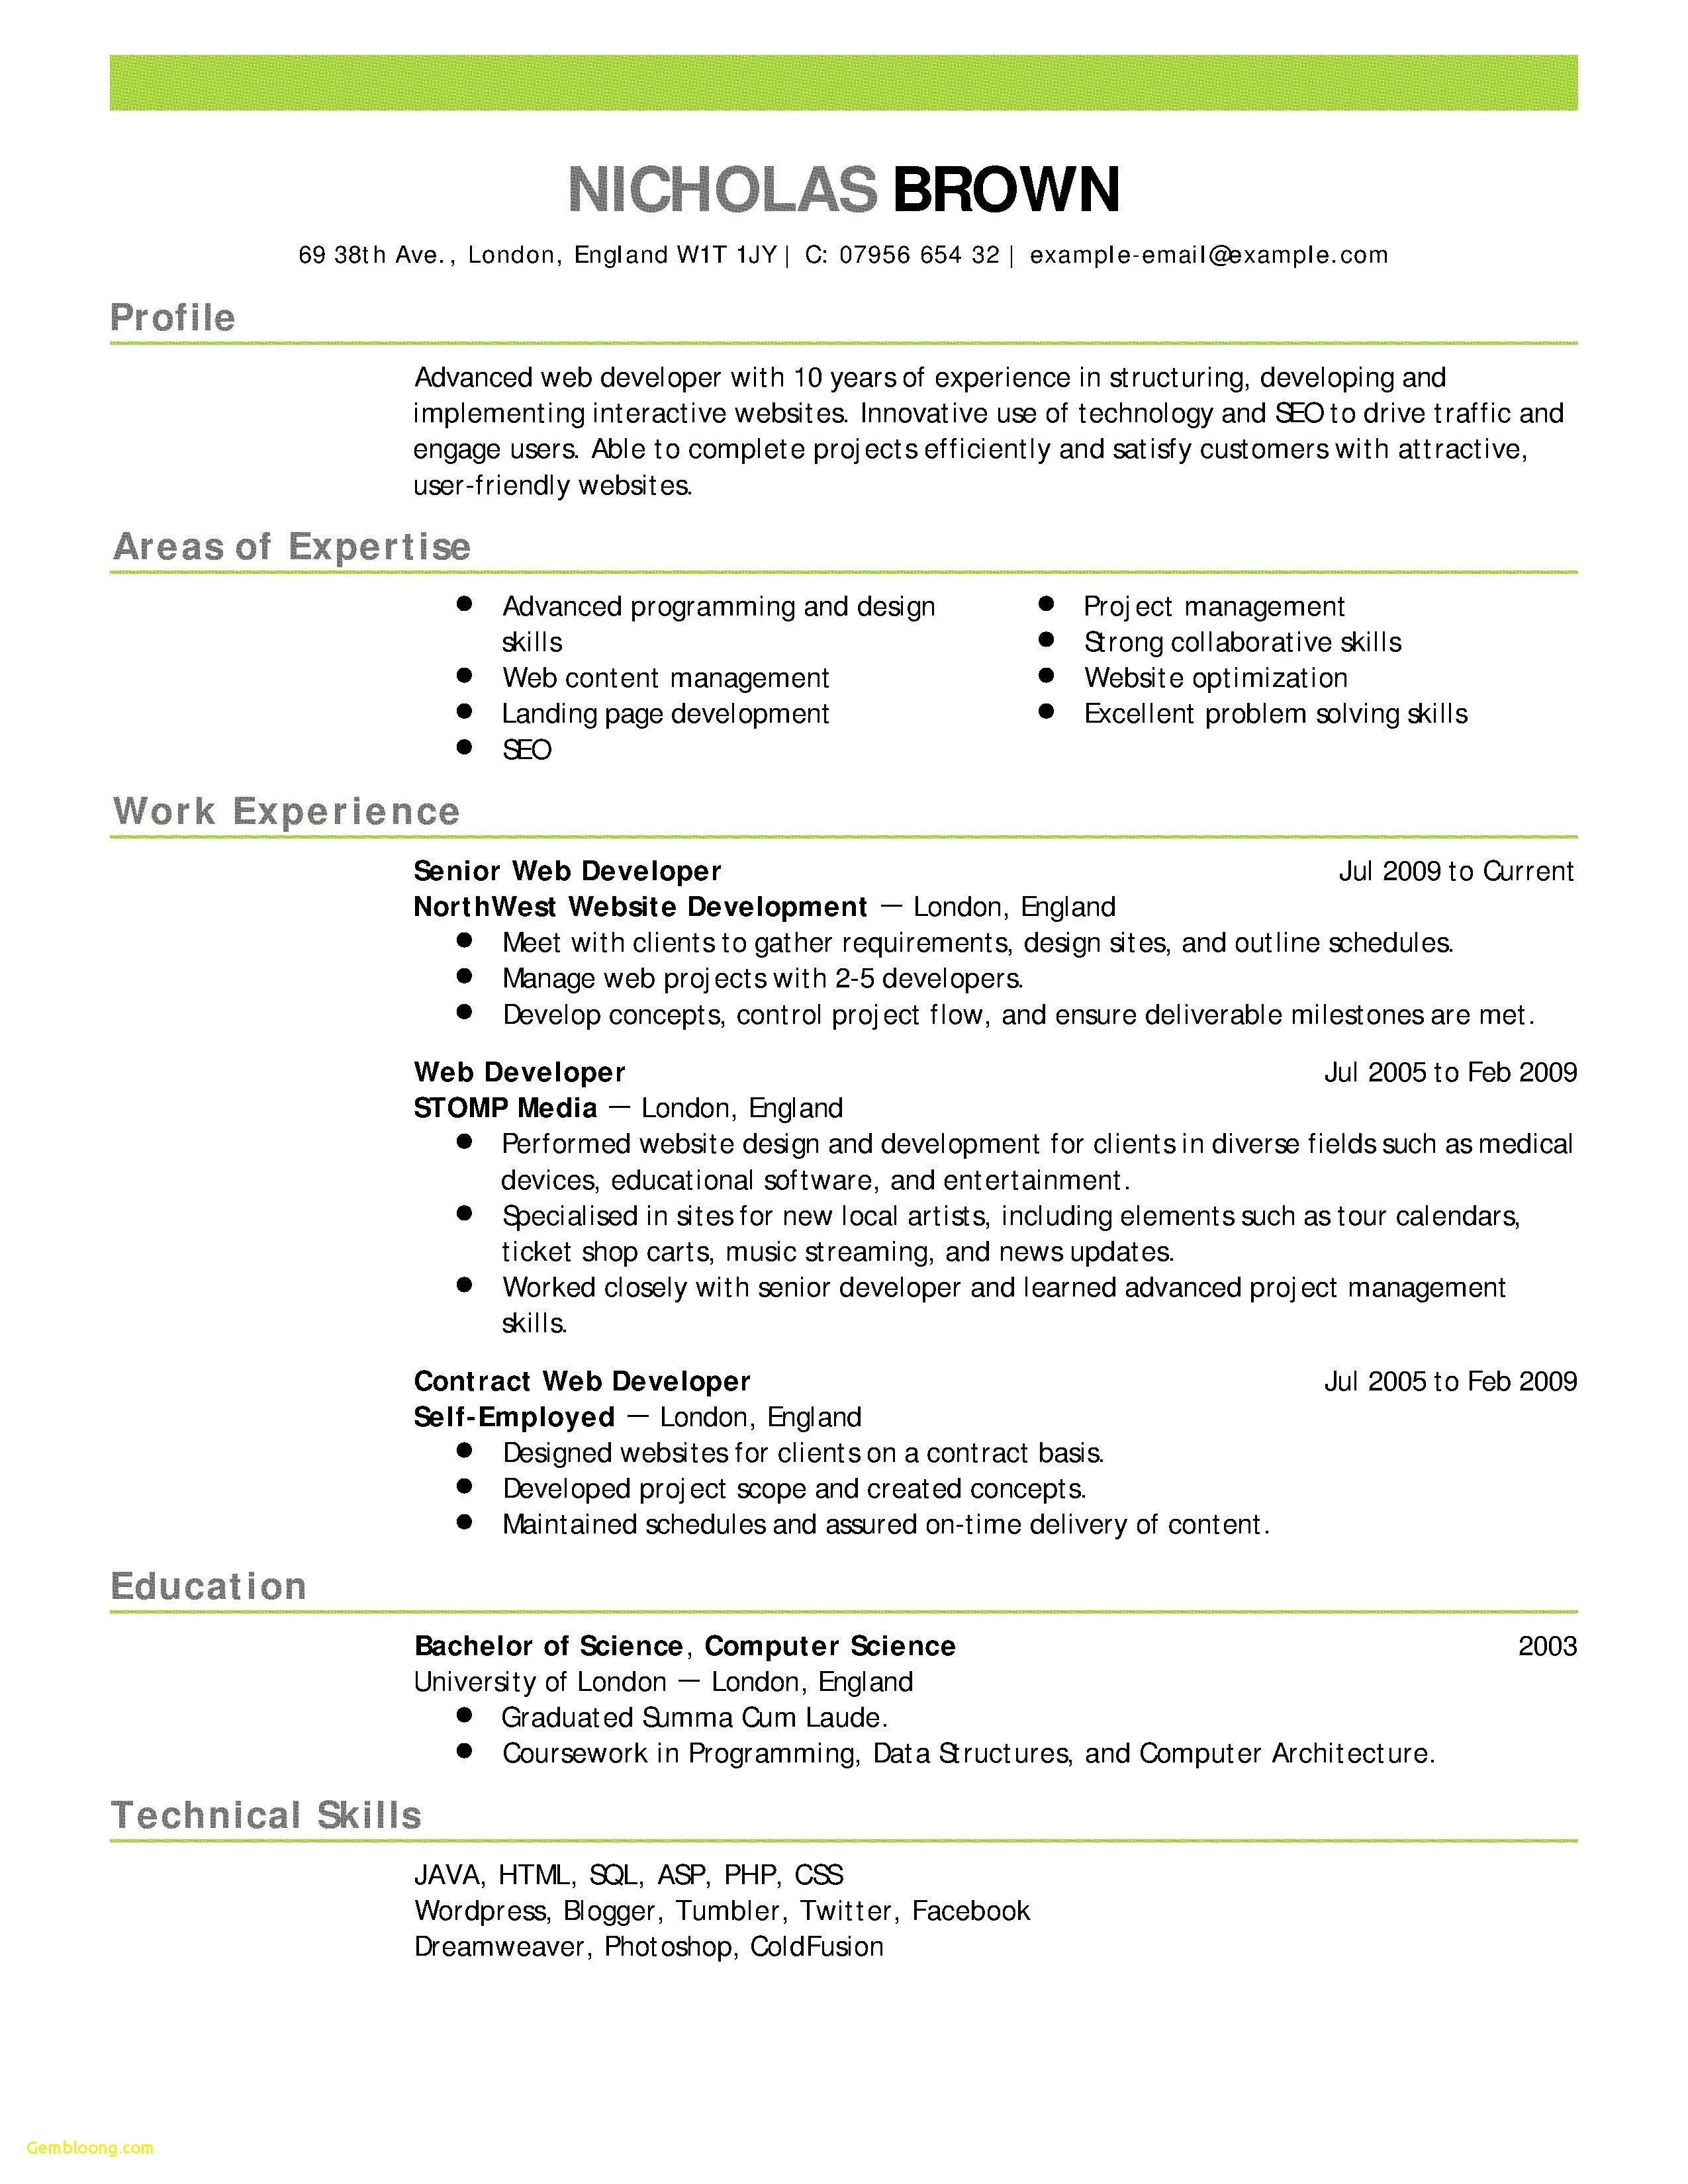 Free Professional Resume Templates - Free Sample Resume Templates Elegant Elegant Pr Resume Template